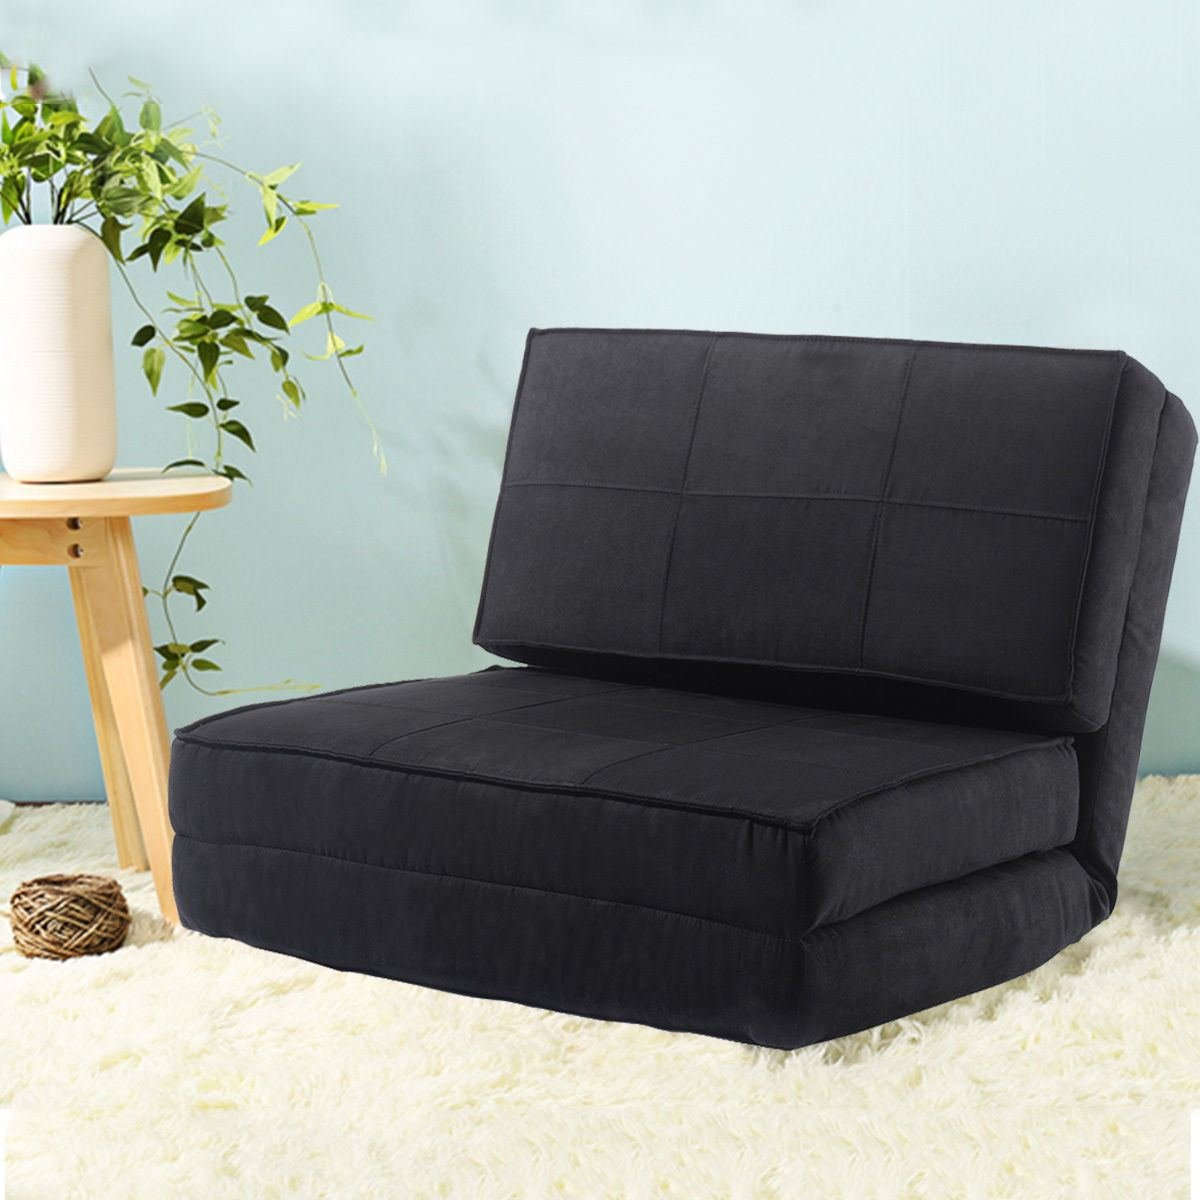 MasterPanel - Fold Down Chair Flip Out Lounger Convertible Sleeper Bed Couch Game Dorm Guest #TP3251